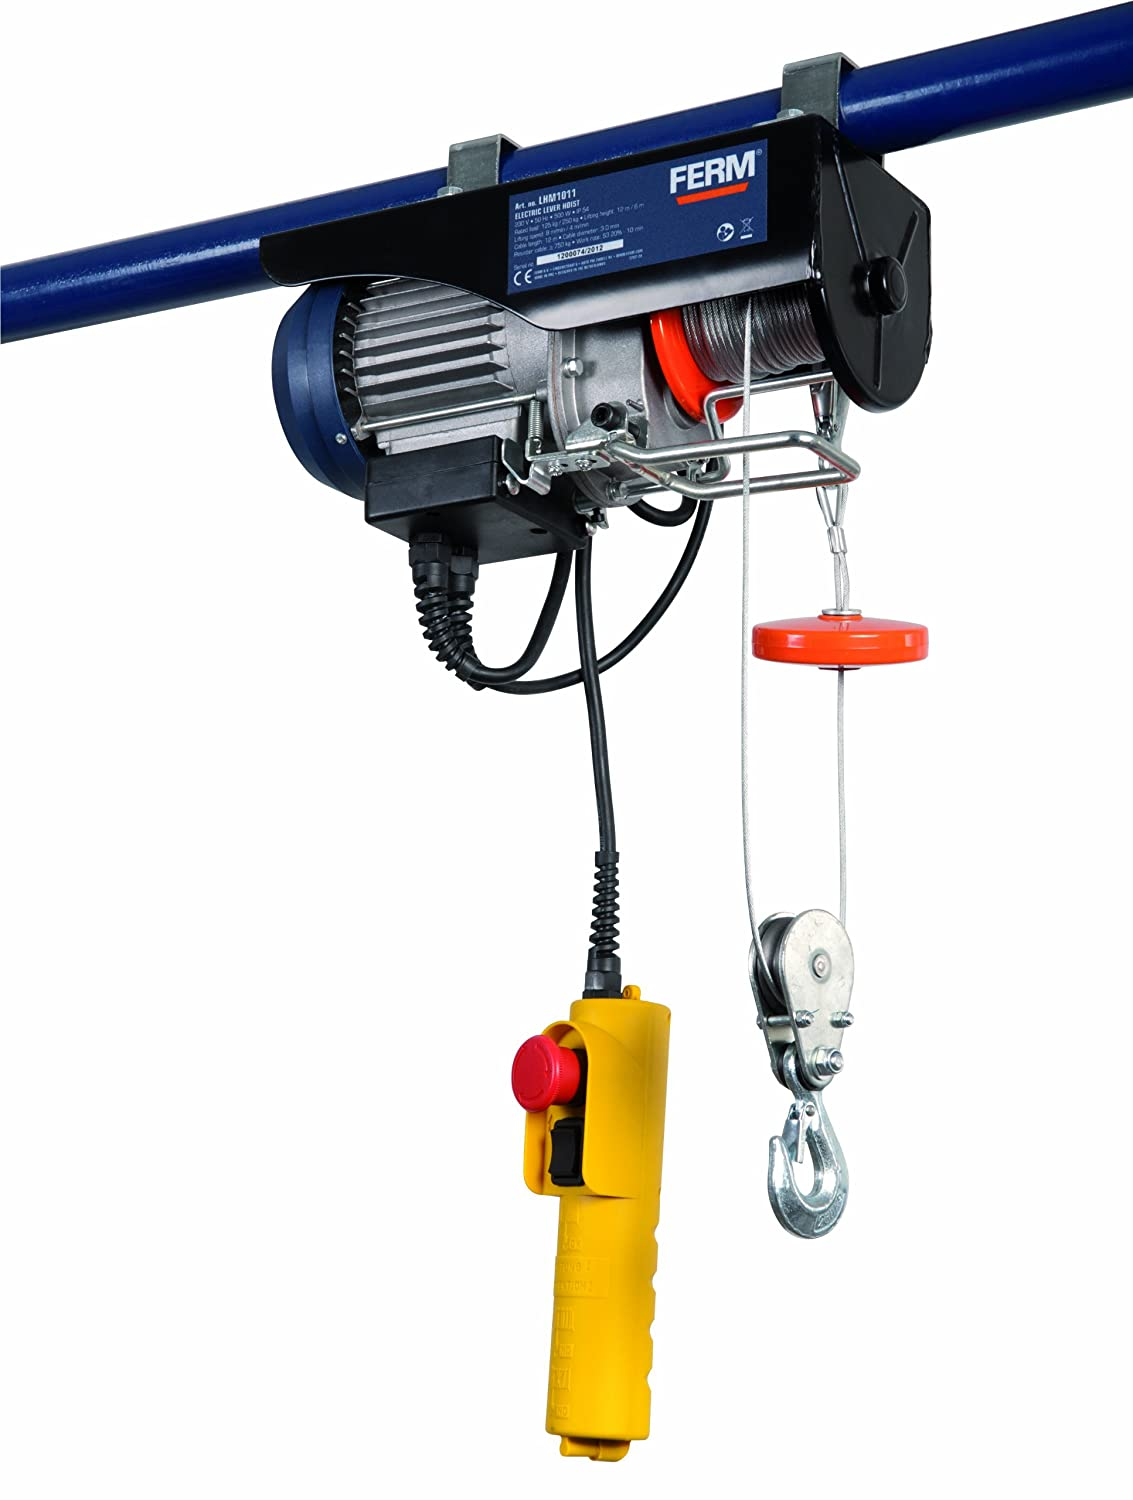 FERM LHM1011 Electric Lever Hoist - Garage Hoist - 500W - Max. lifting 250Kg - 550Lbs - Max. Lifting Height 12 Metre